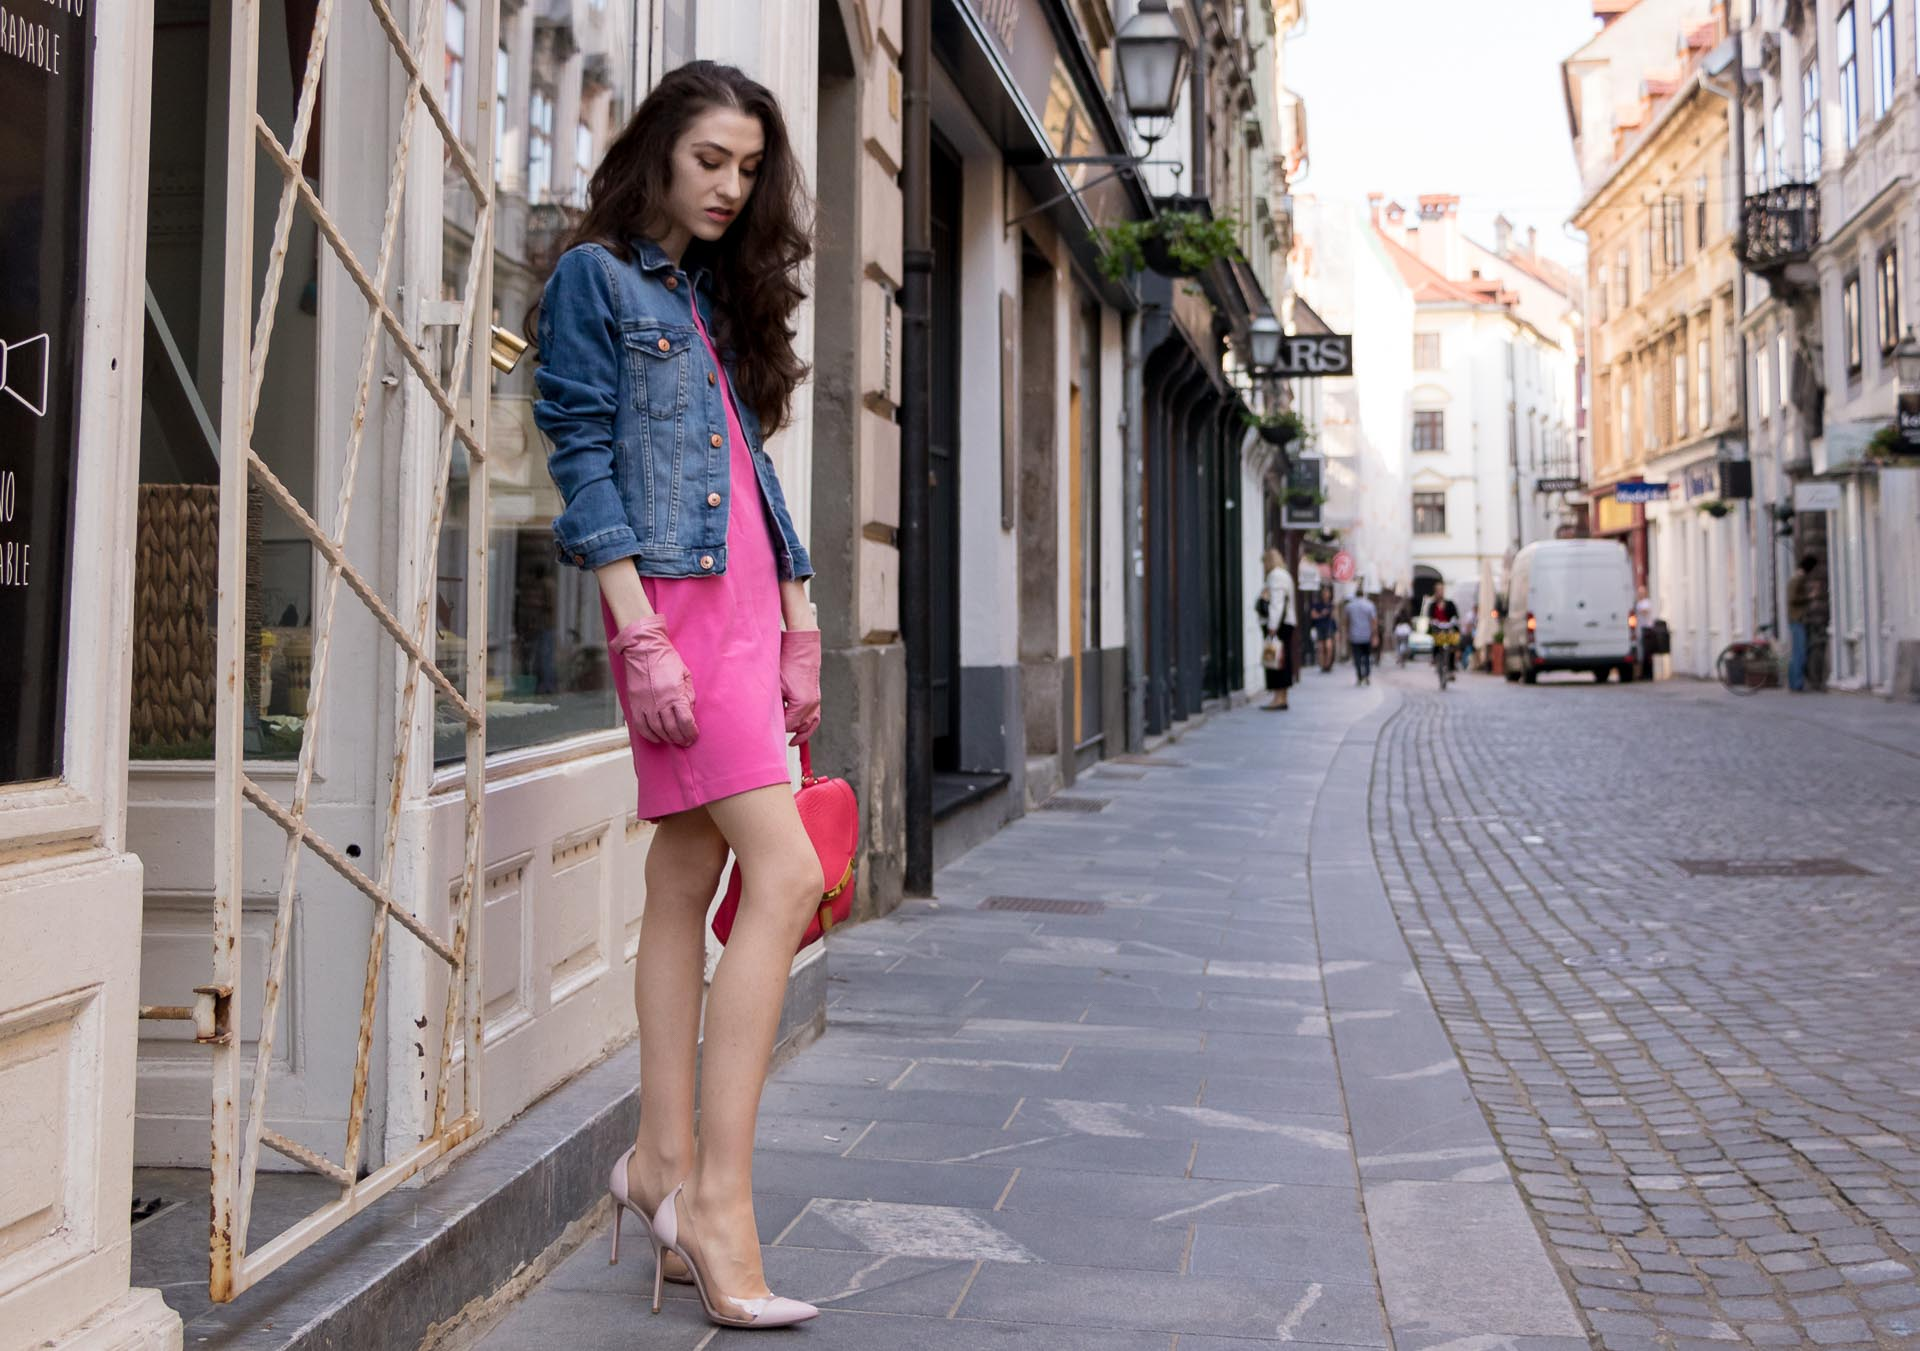 Veronika Lipar Fashion Blogger of Brunette from Wall Street dressed in H&M denim jacket, pink shift cady dress, blush Gianvito Rossi plexi pumps, pink Forzieri gloves, See by Chloé pink top handle bag, Adam Selman x Le Specs white cat eye Lolita sunglasses